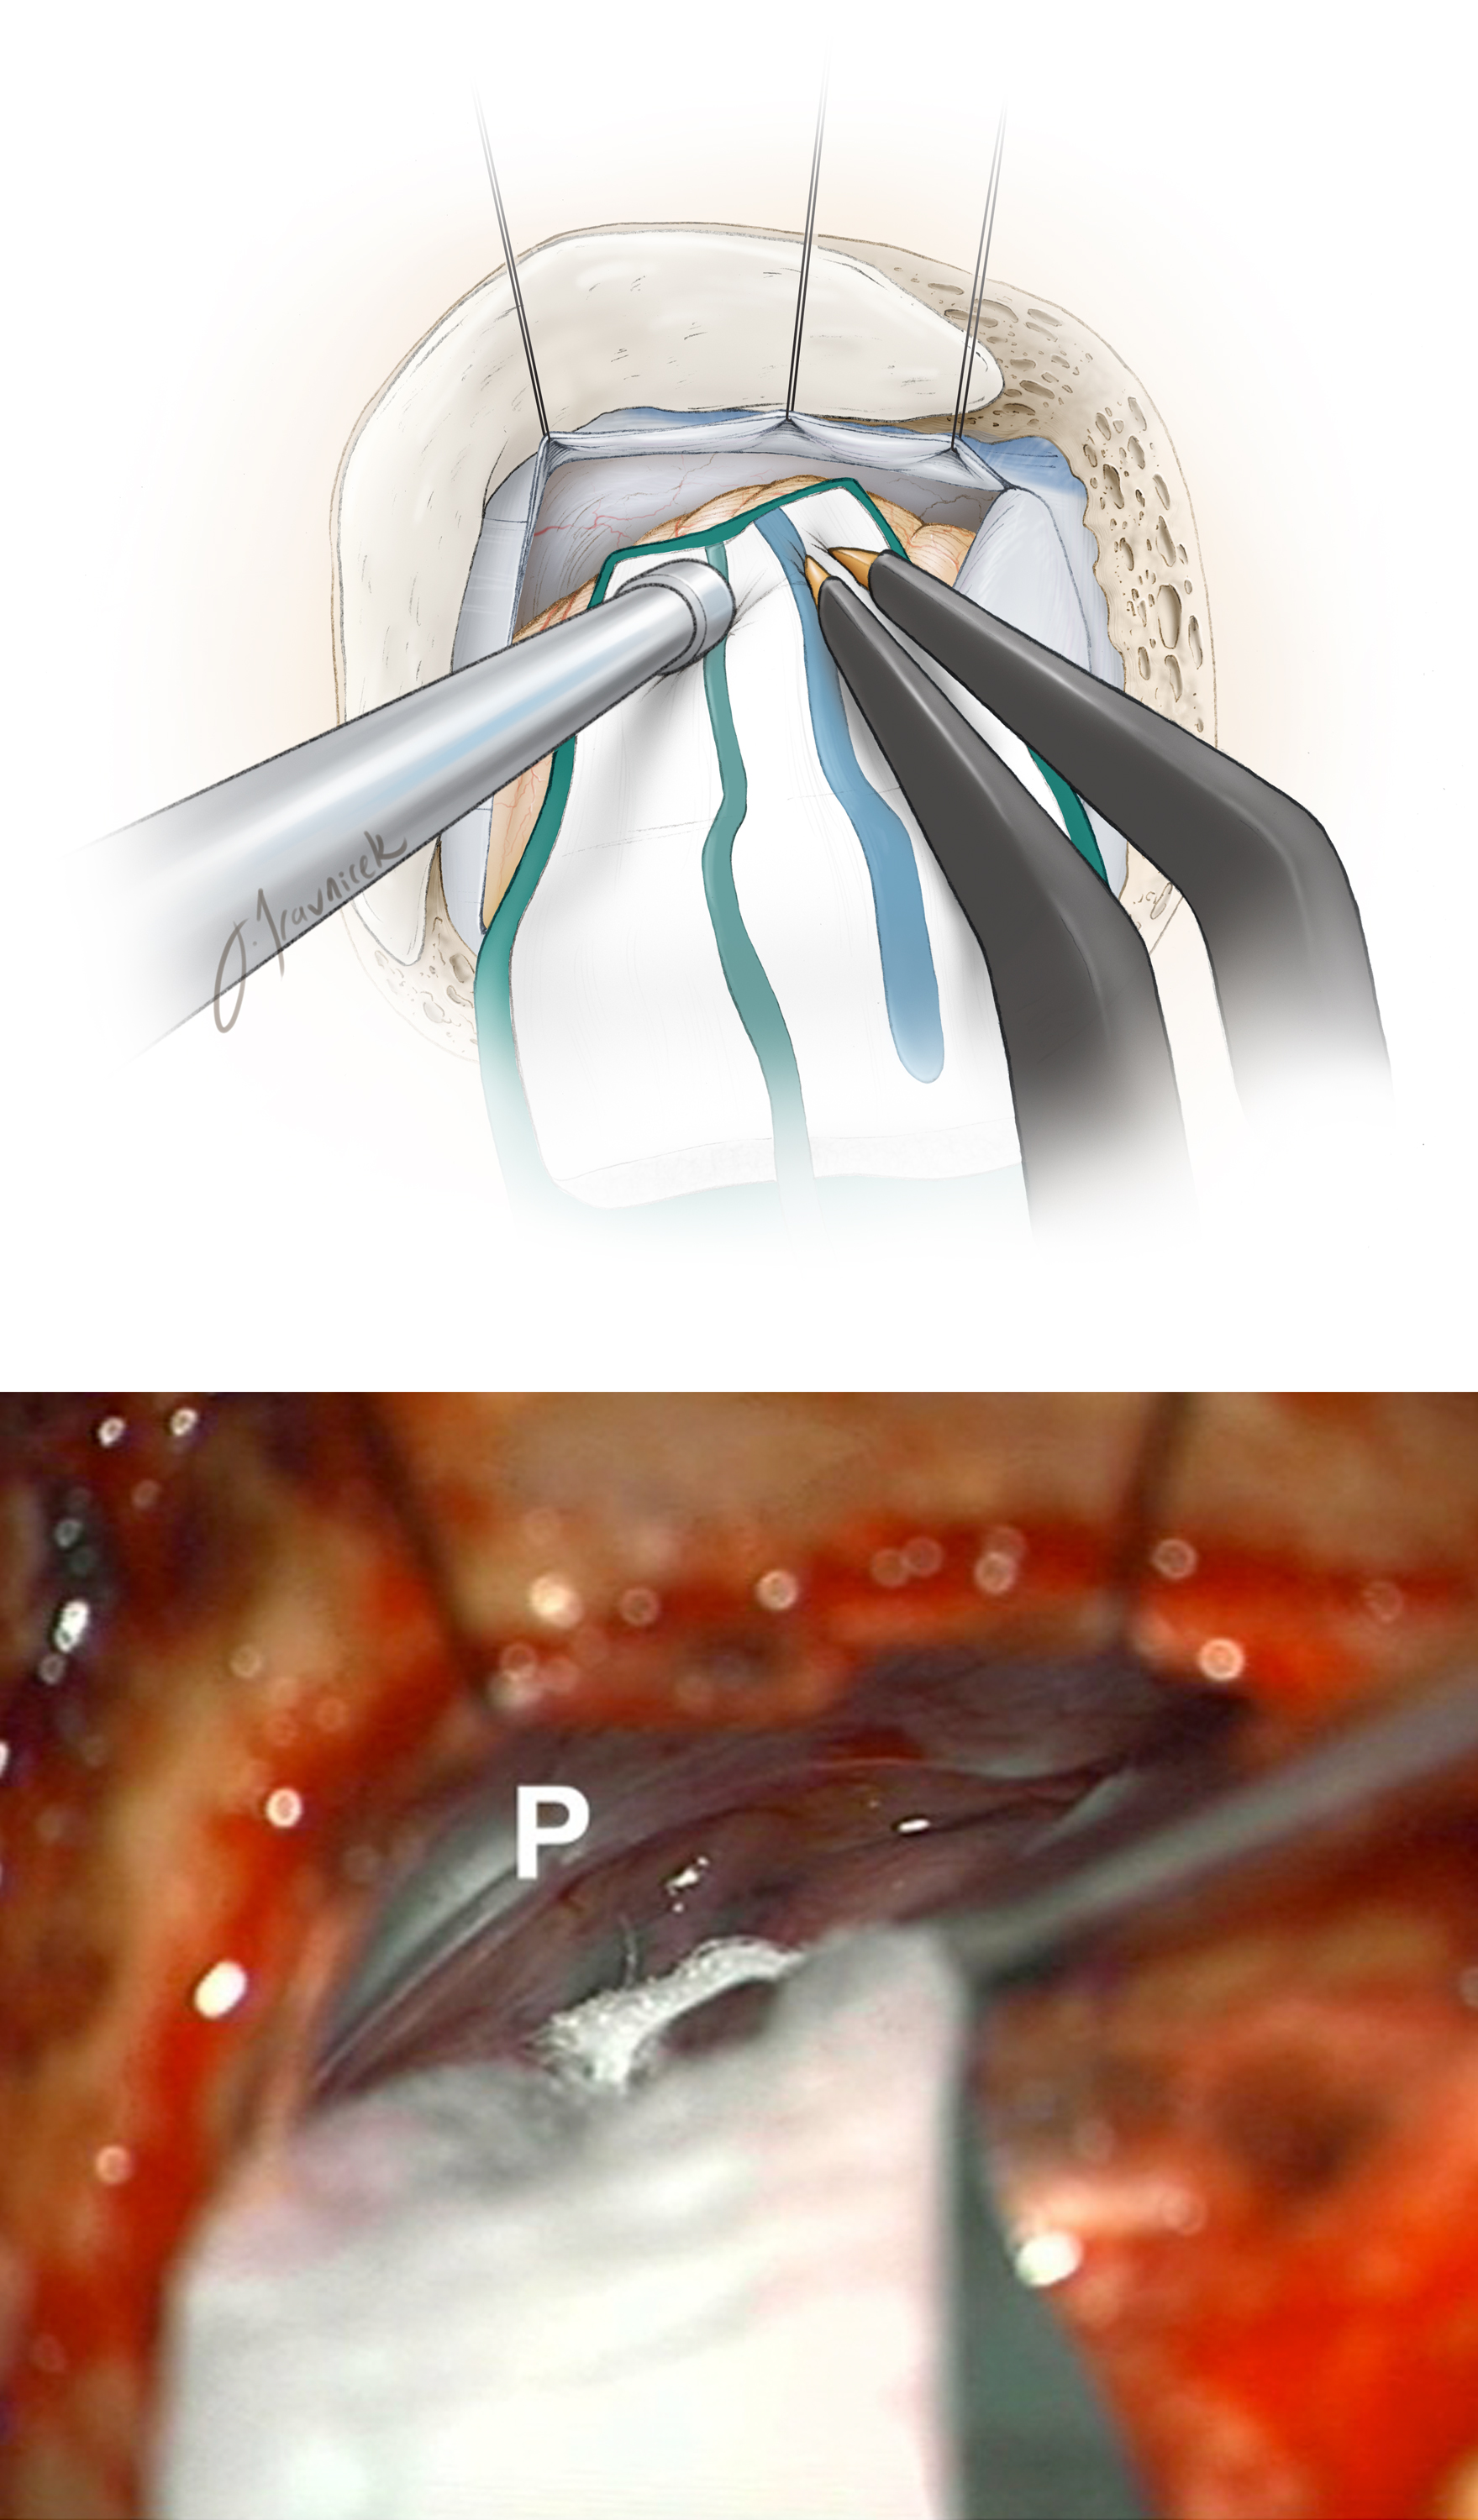 Figure 7: Supramedial cerebellar retraction: A piece of glove (cut slightly larger than the cottonoid patty) acts as a rubber dam. It protects the cerebellar hemisphere against the rough surface of the cottonoid as the rubber dam slides over the cerebellum while dissection is continued to expose the cerebellopontine angle (top image). I identify the junction of the petrous bone and the floor of posterior fossa (P, bottom intraoperative image) and advance the cottonoid over the rubber dam near the turn of the petrous bone toward the lower cranial nerves.